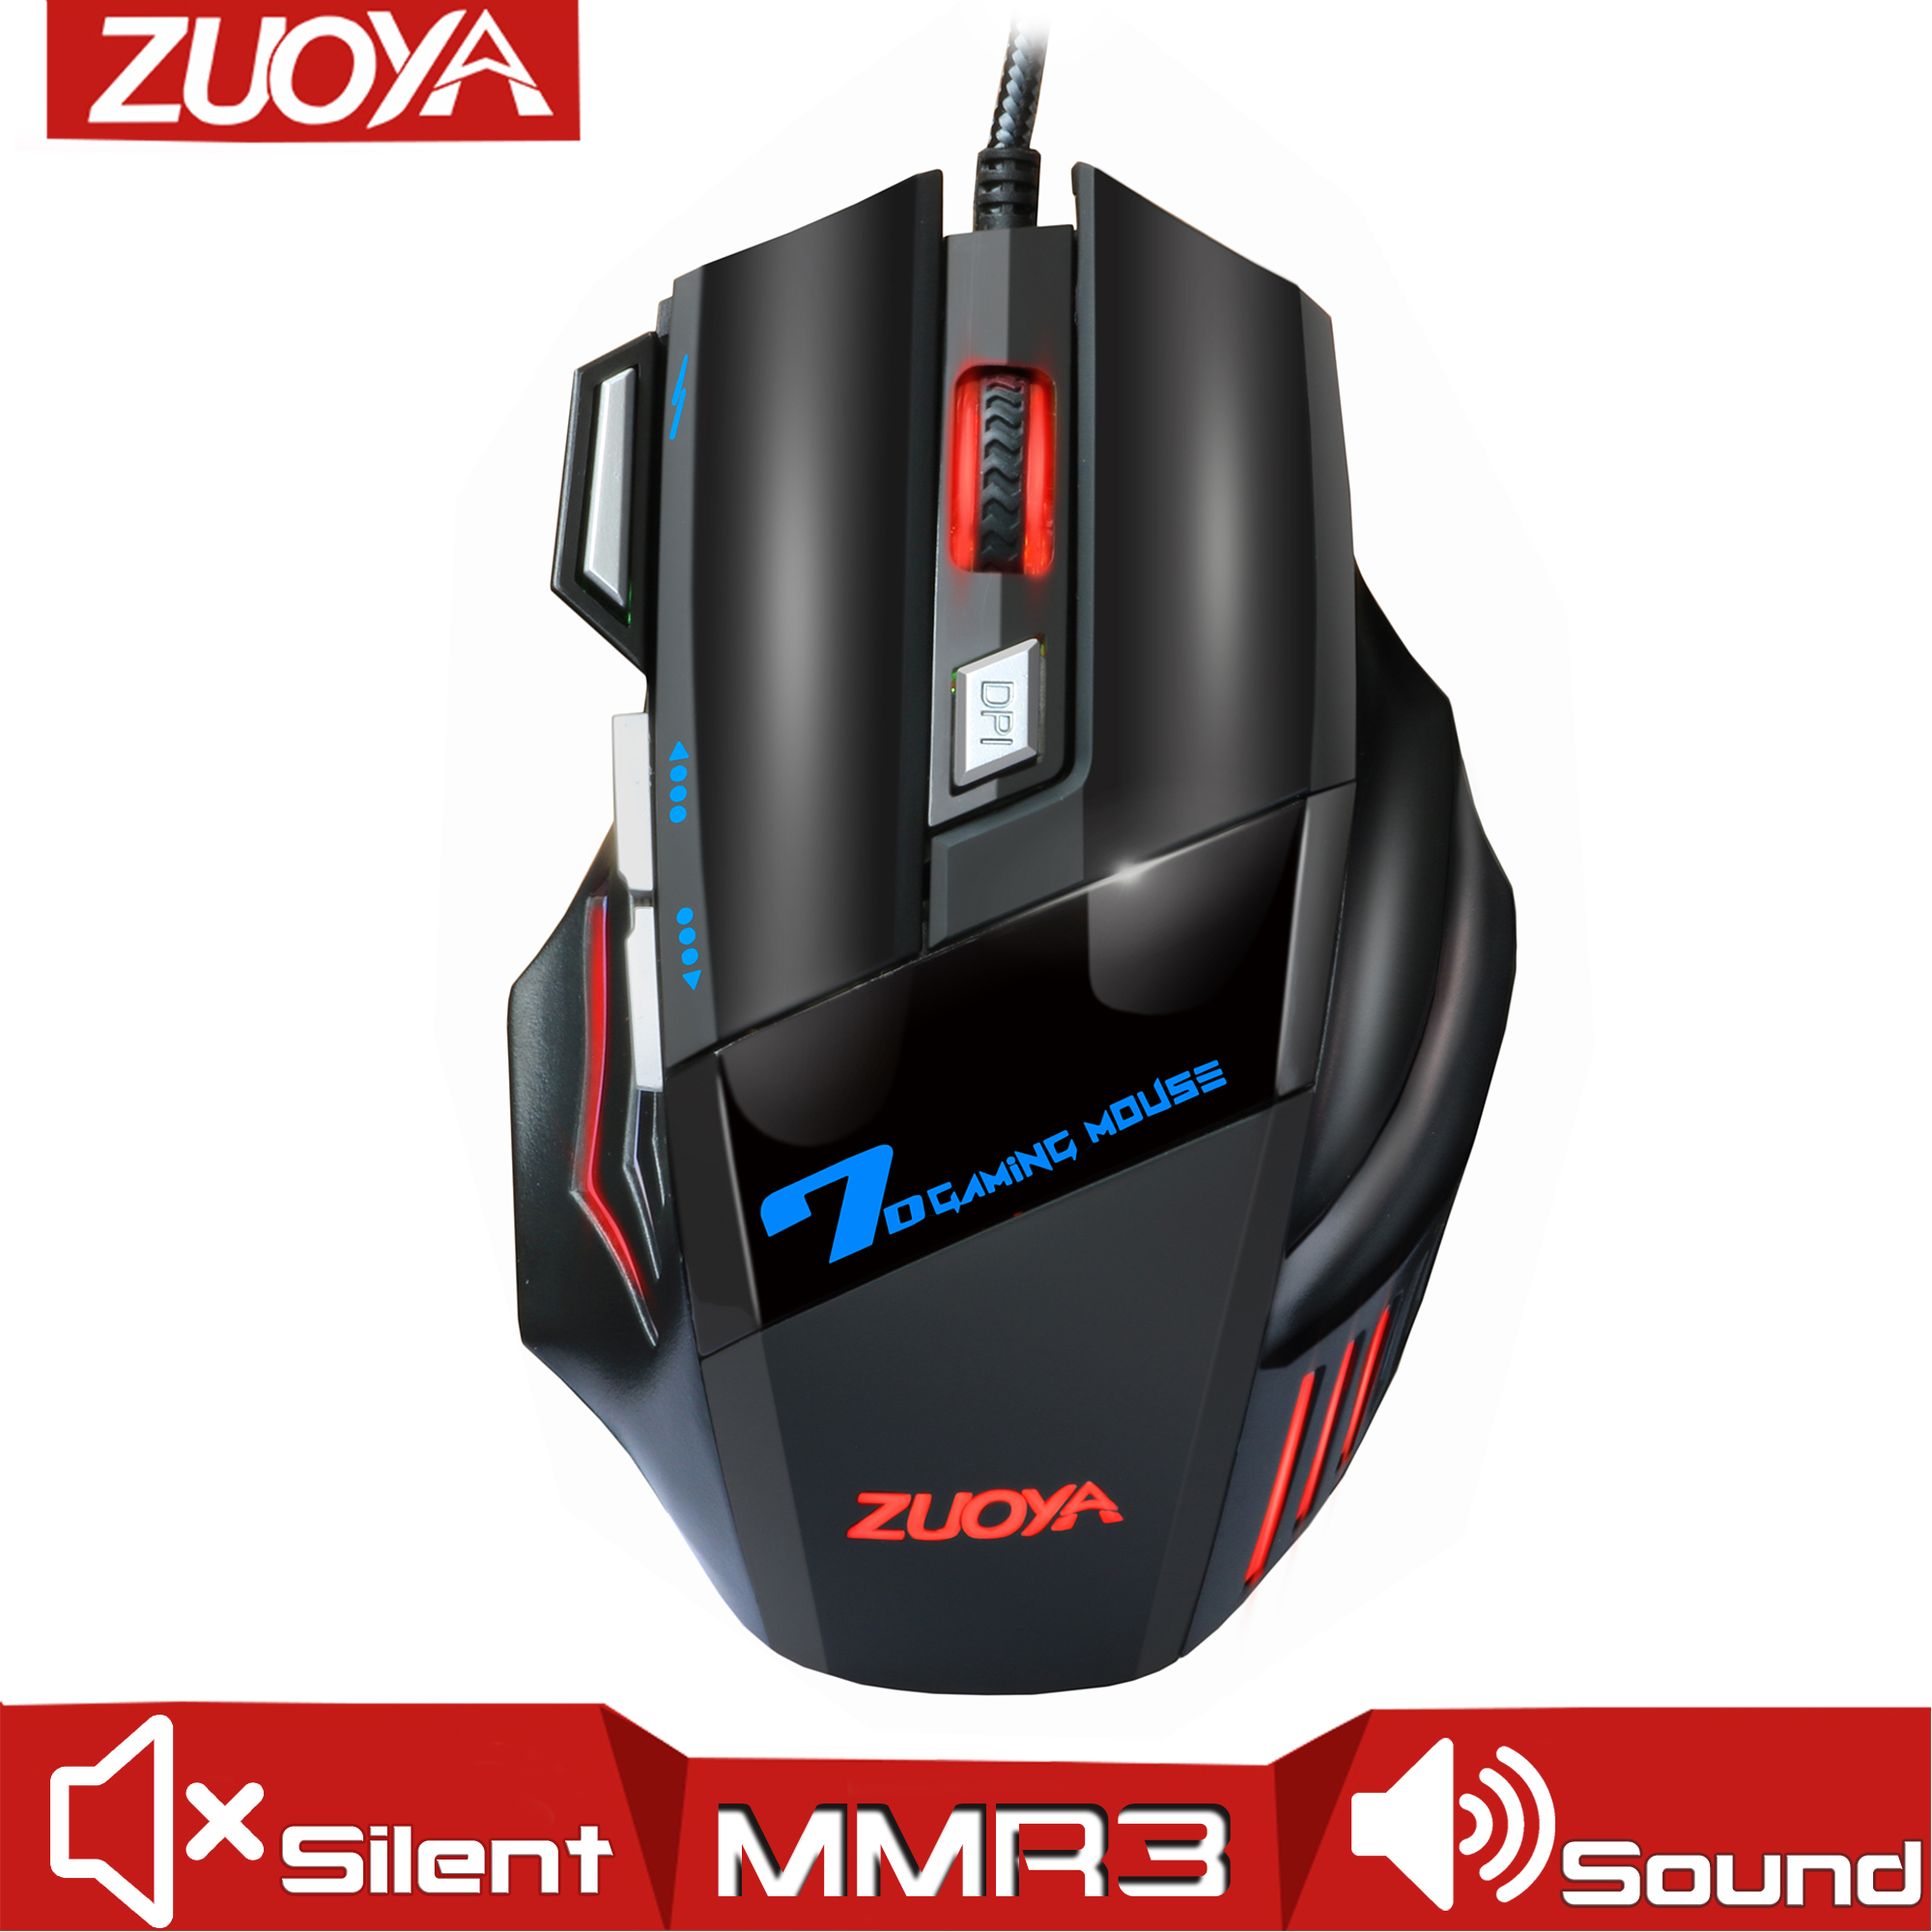 Professional Wired Gaming Mouse Game Mice USB 5500DPI Adjustable LED Backlight Optical Mause For PC Laptop Notebook